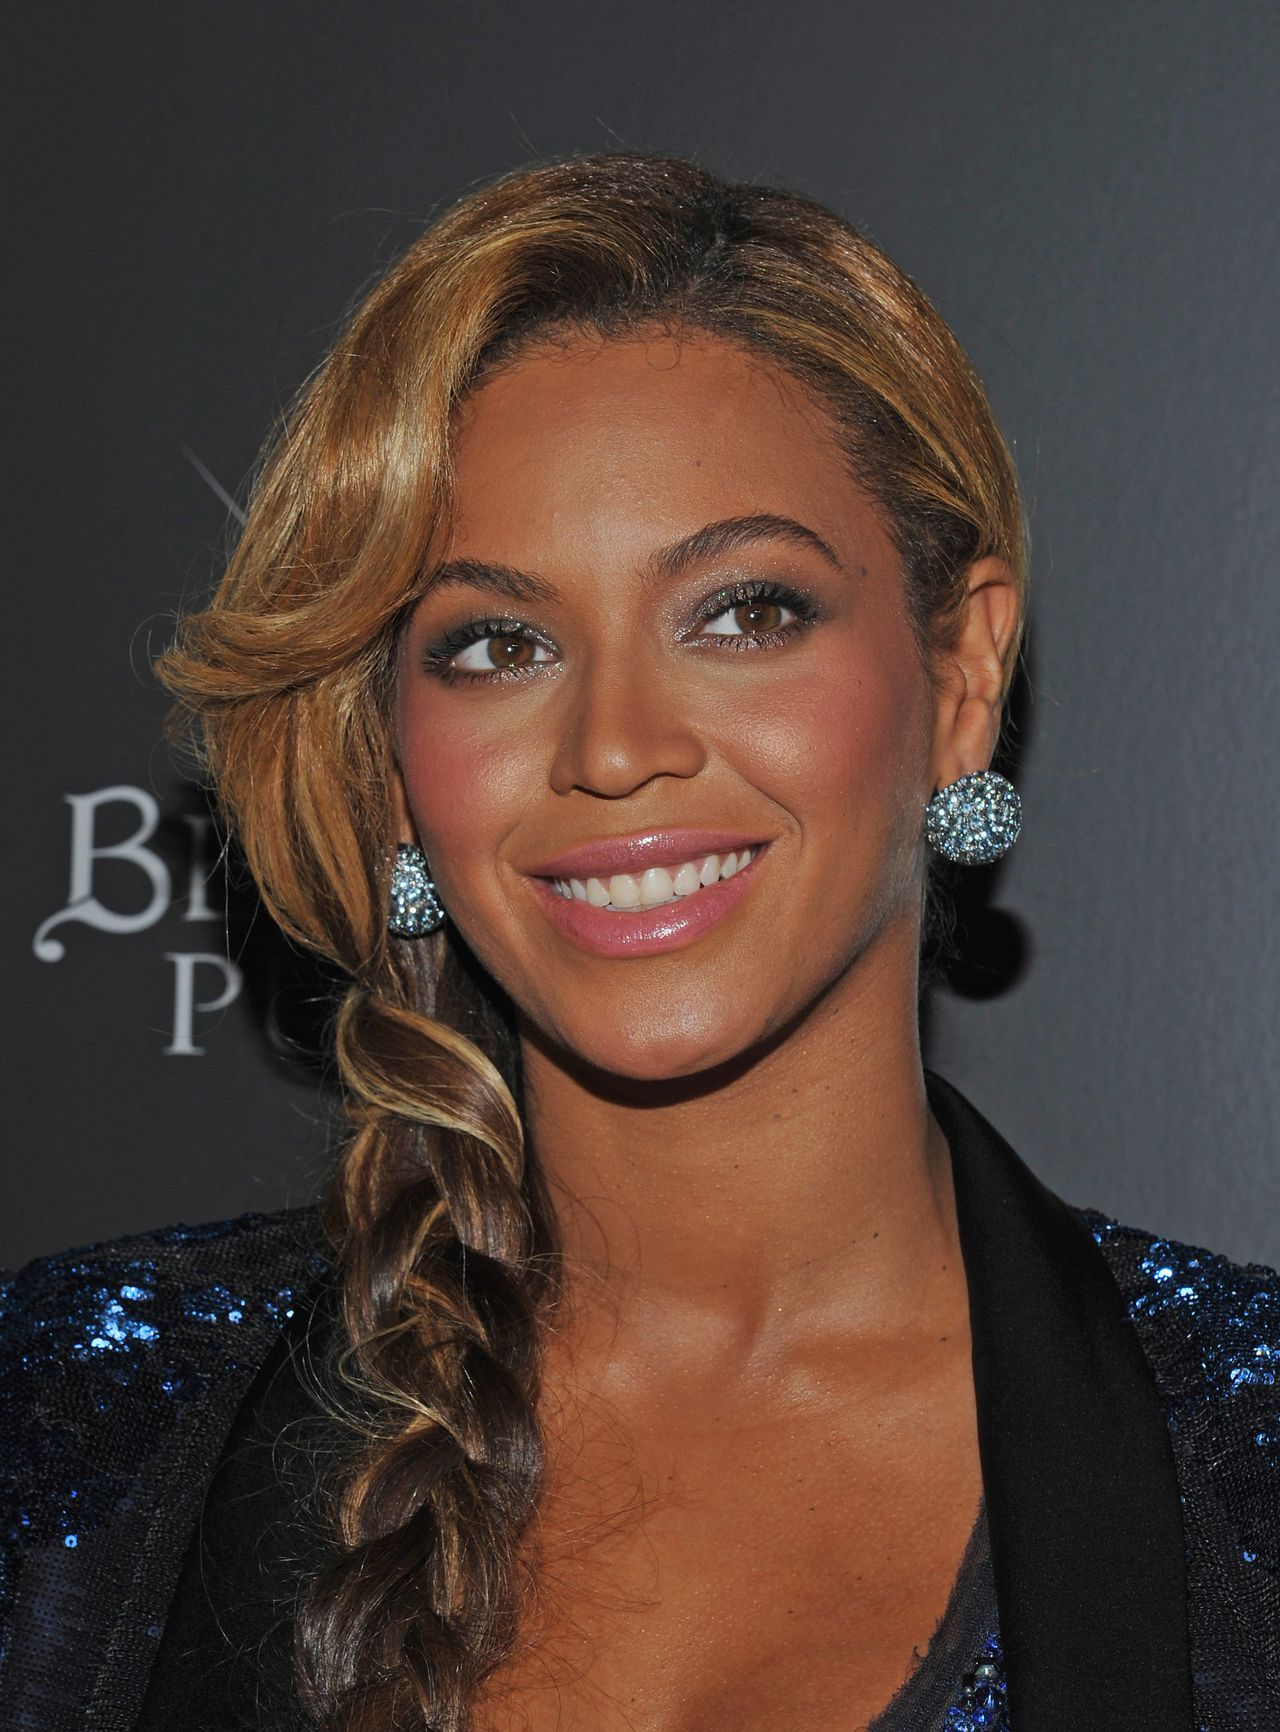 NEW YORK, NY - SEPTEMBER 21: Singer/actress Beyonce Knowles attends the Beyonce Pulse fragrance launch at Penthouse (PH-D) at Dream Downtown on September 21, 2011 in New York City. Mike Coppola/Getty Images/AFP == FOR NEWSPAPERS, INTERNET, TELCOS & TELEVISION USE ONLY ==